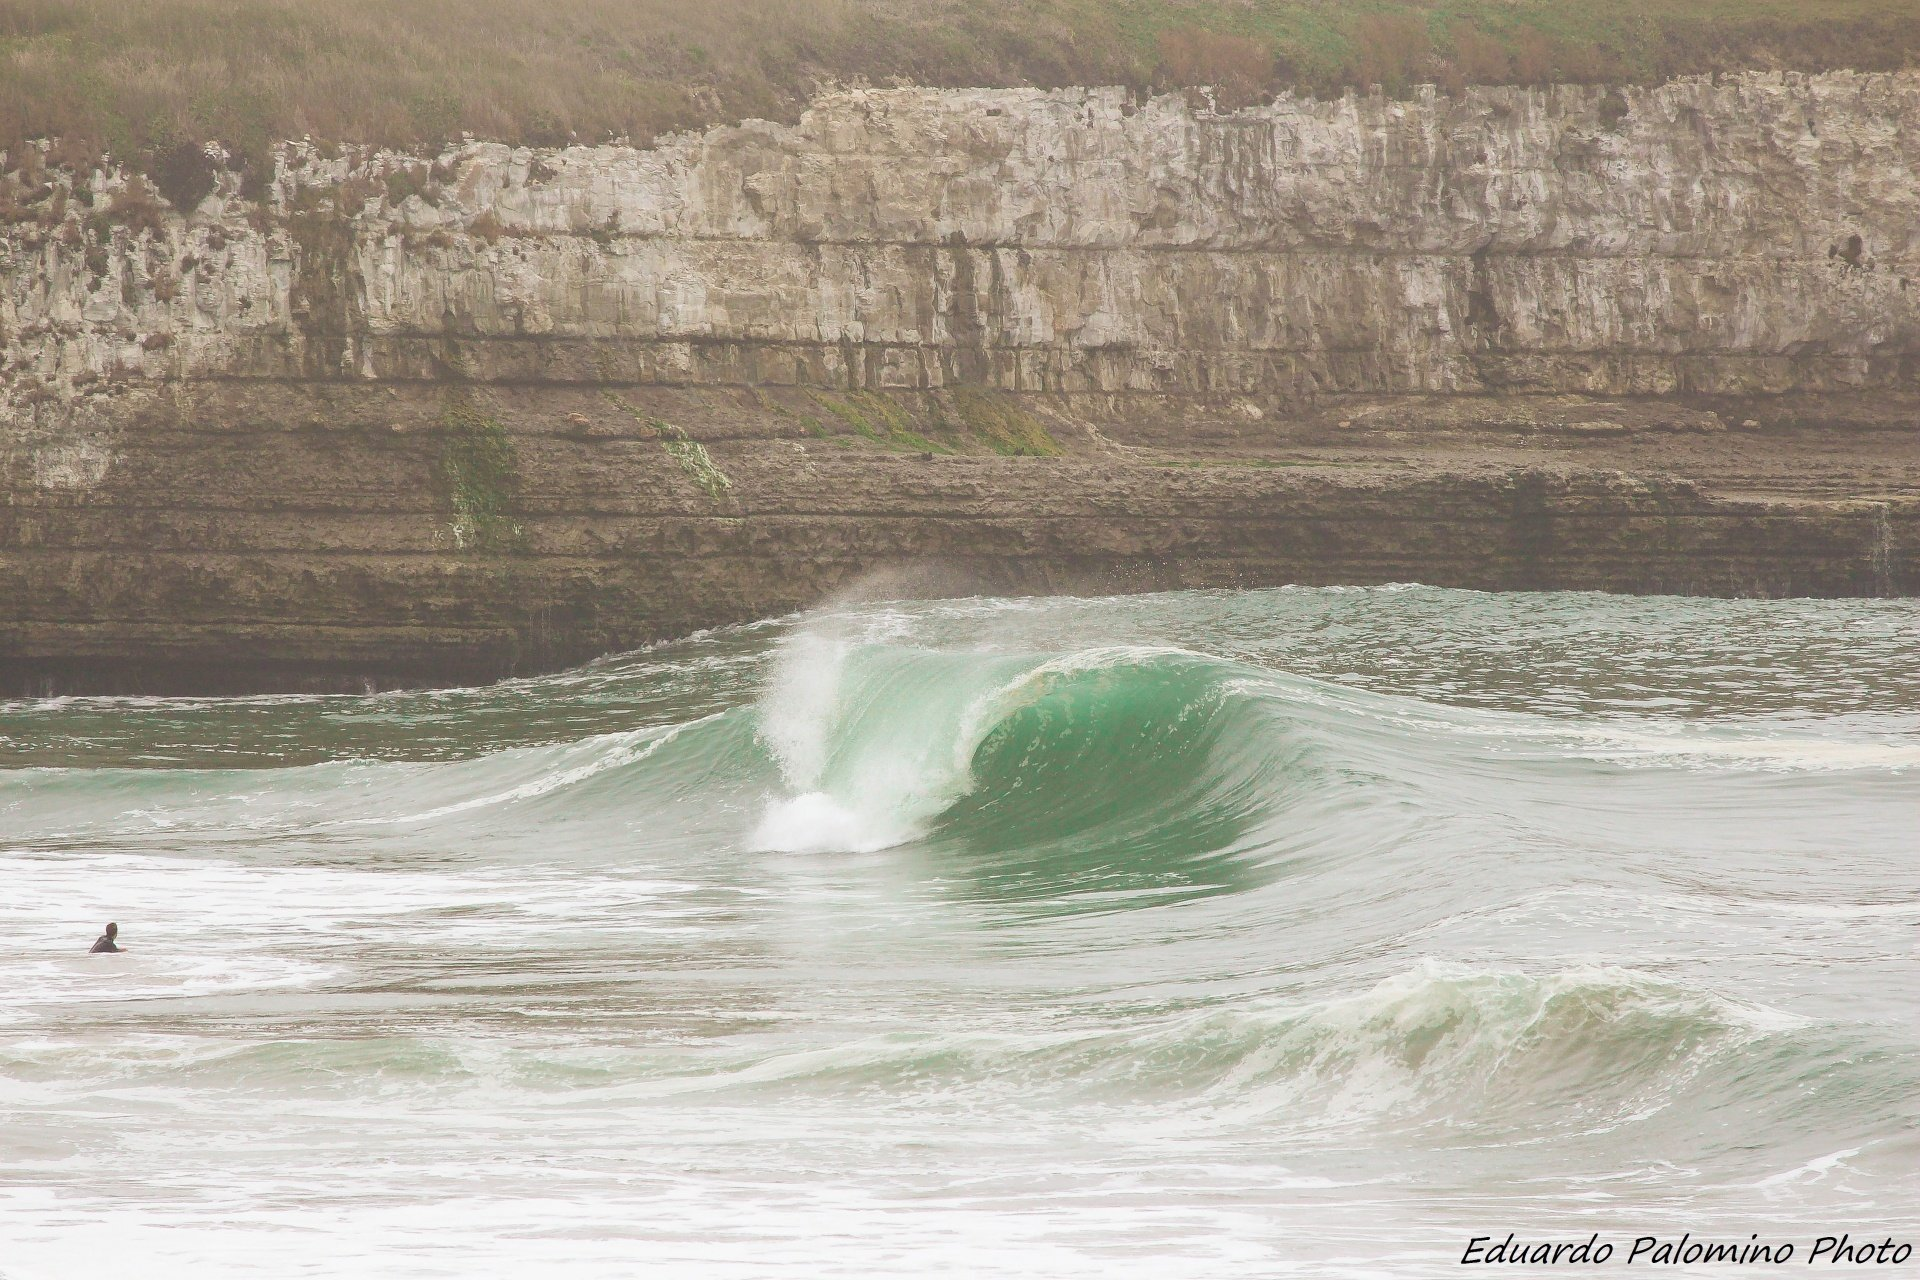 Eduardo Palomino's photo of Pleasure Point